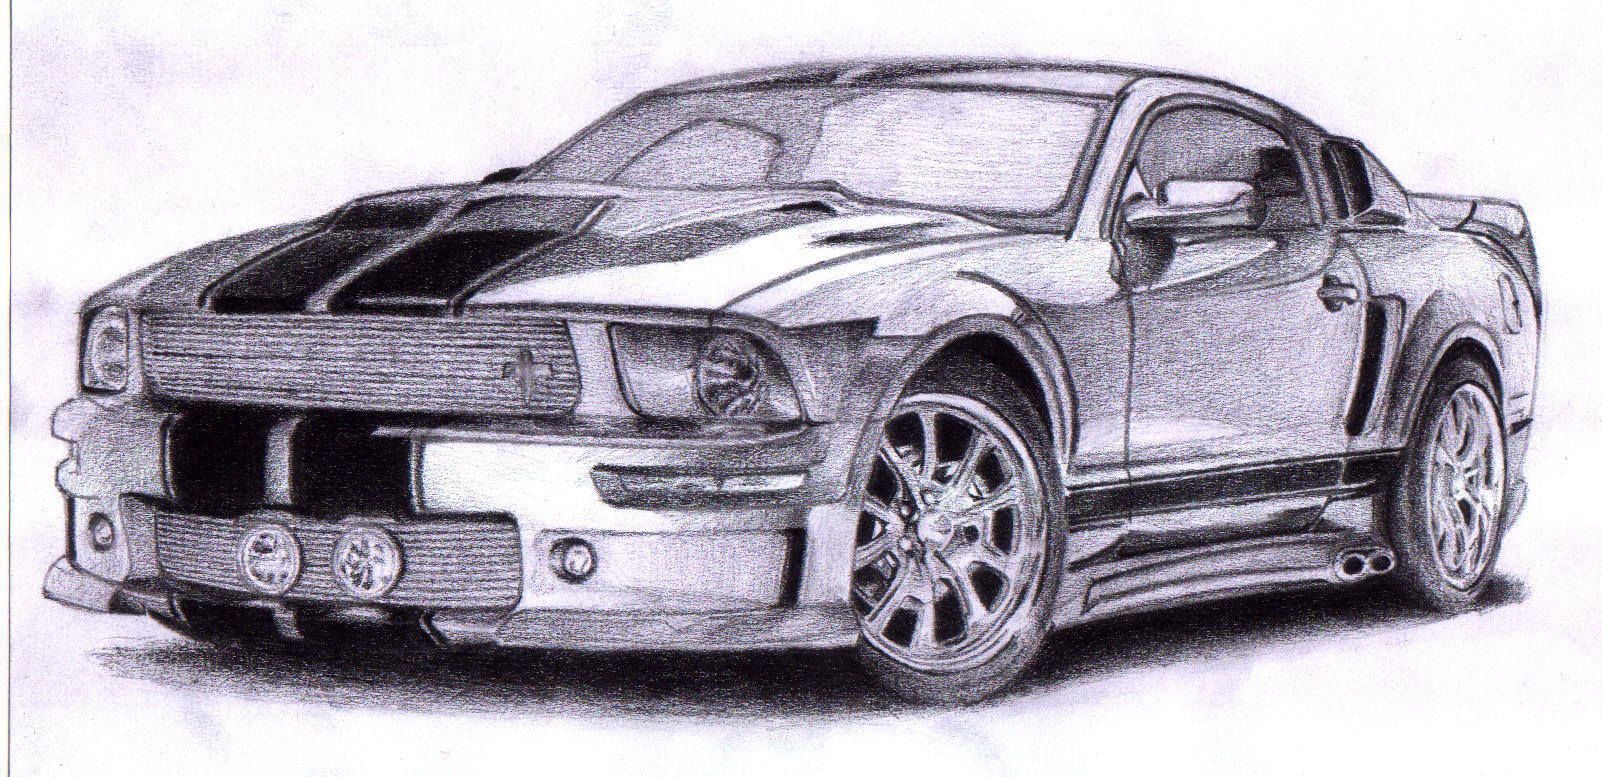 Ford Mustang Drawing At Getdrawings Com Free For Personal Use Ford